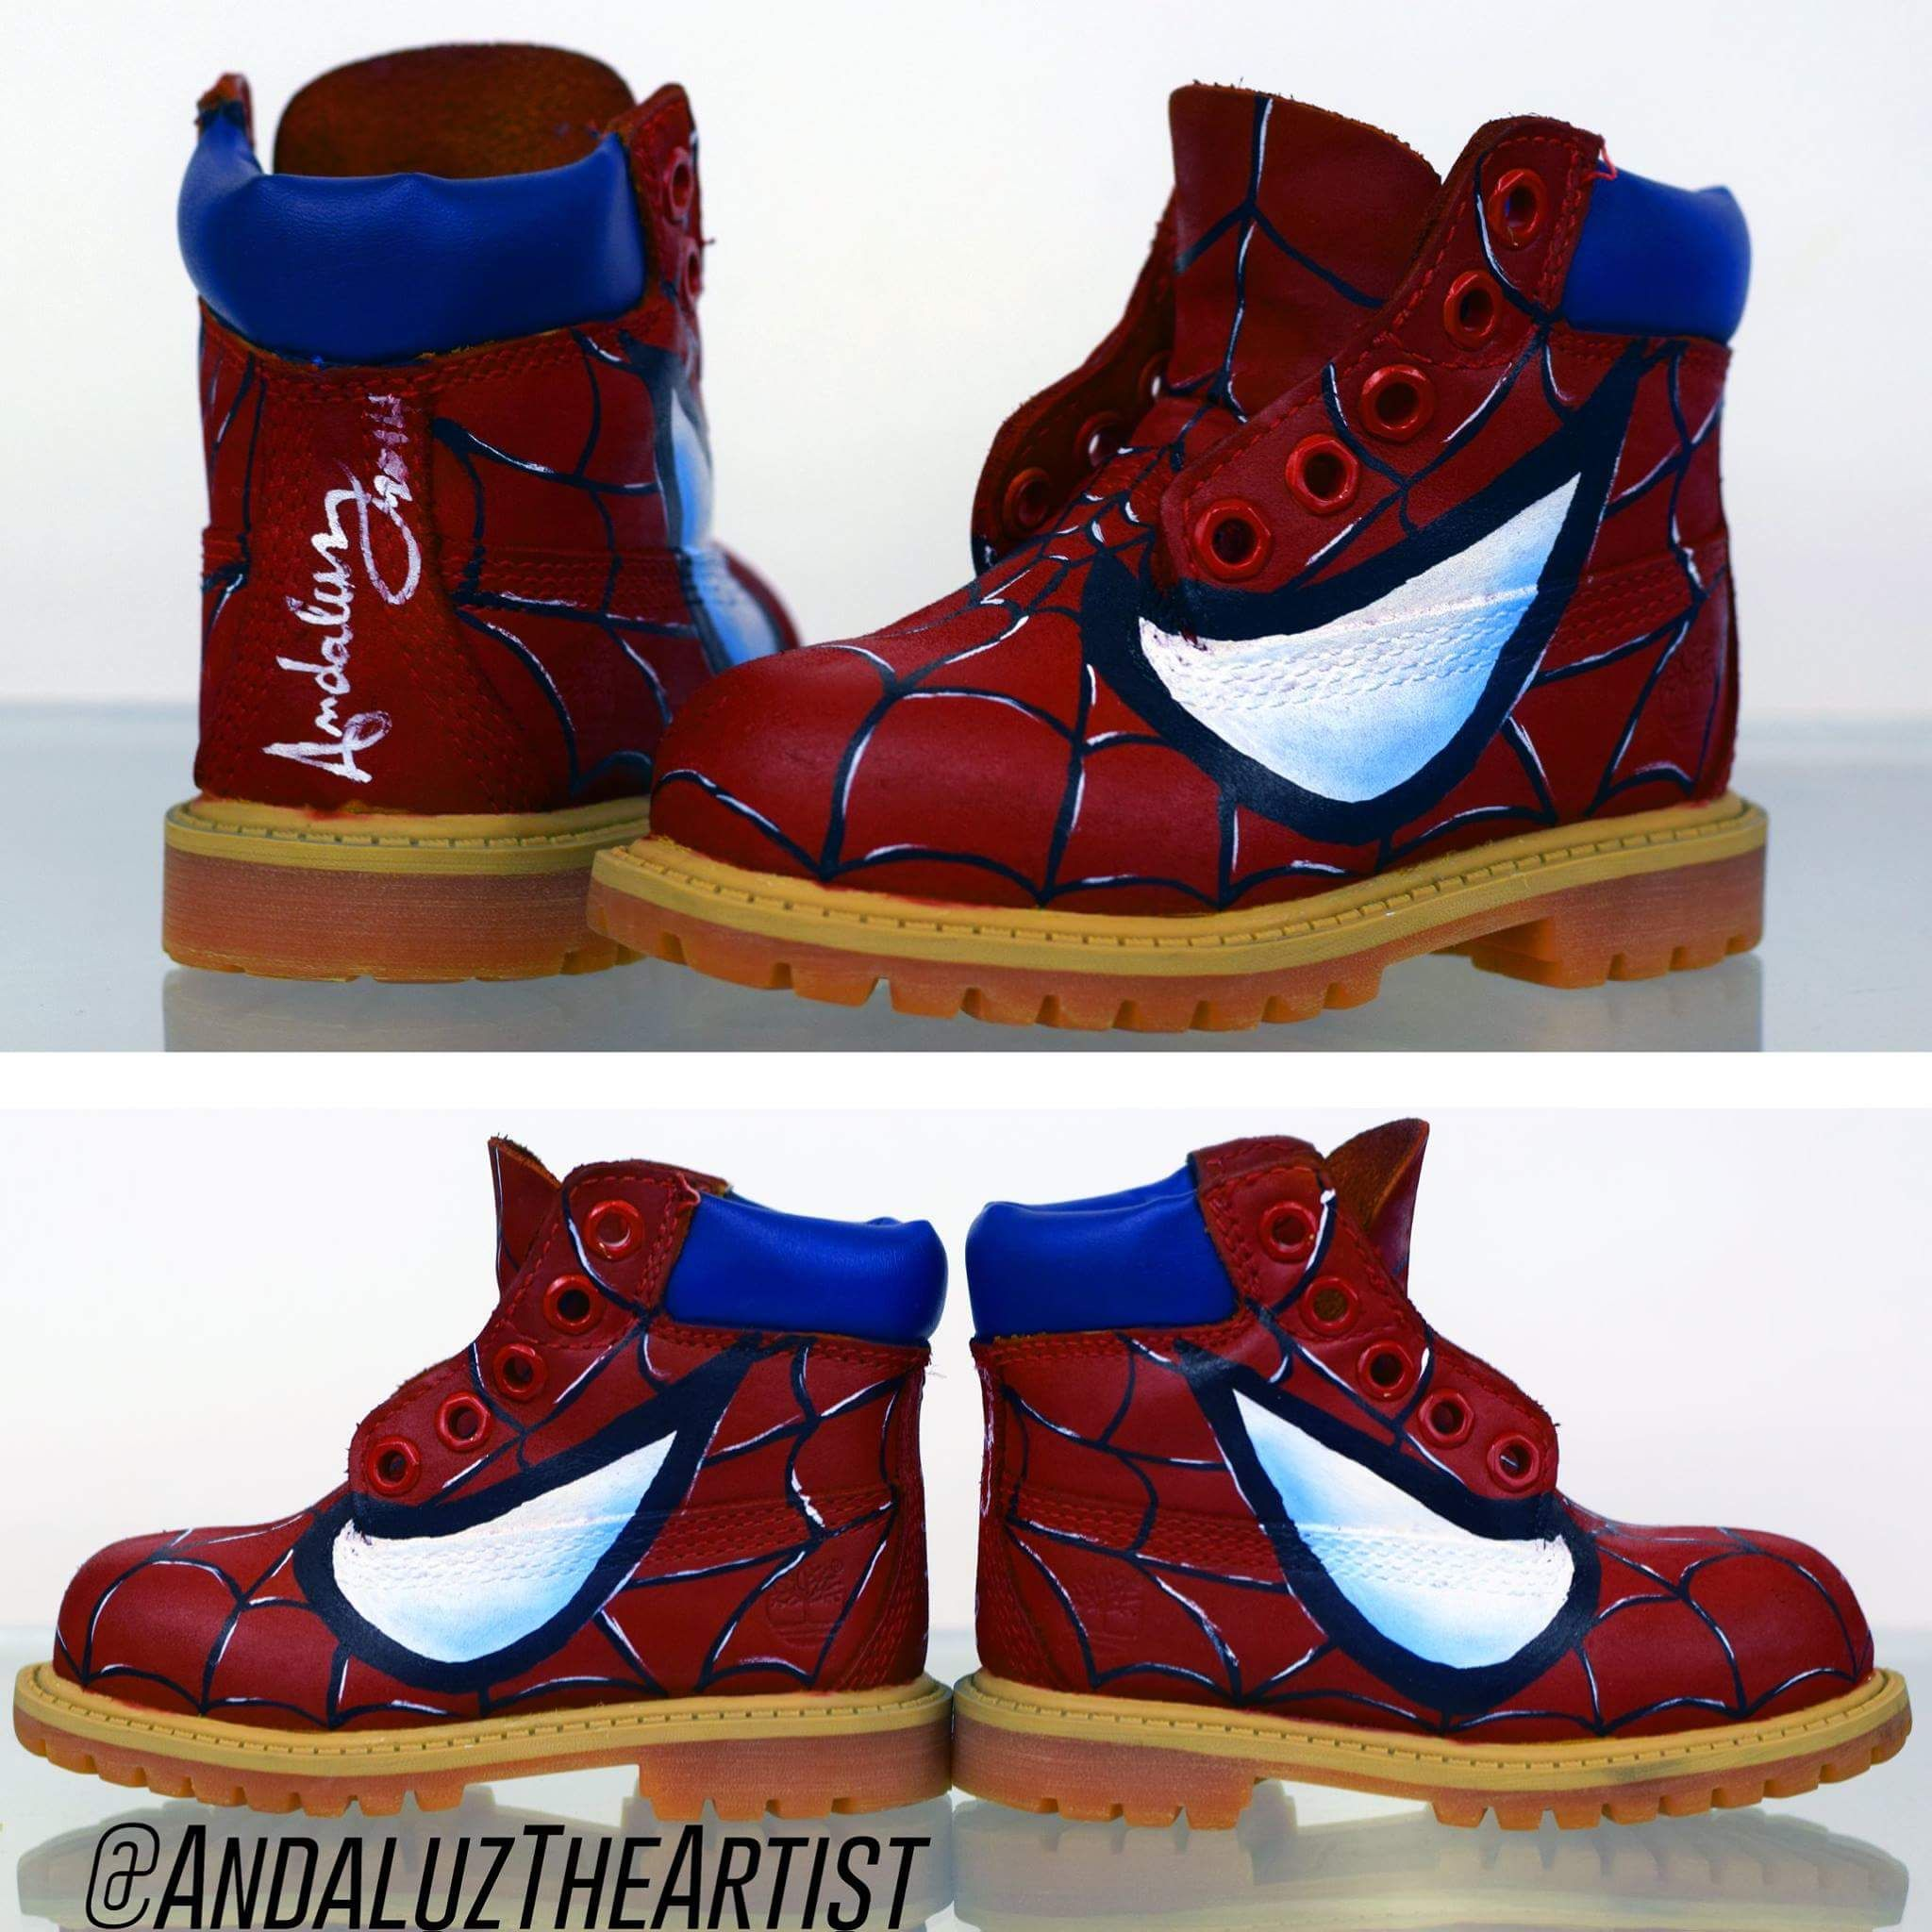 ff3f75c05fa Spiderman themed Timbs painted by Andaluz the Artist.  spidy  boots   spiderman  peterparker  andaluztheartist  custom  sneaker  modification ...